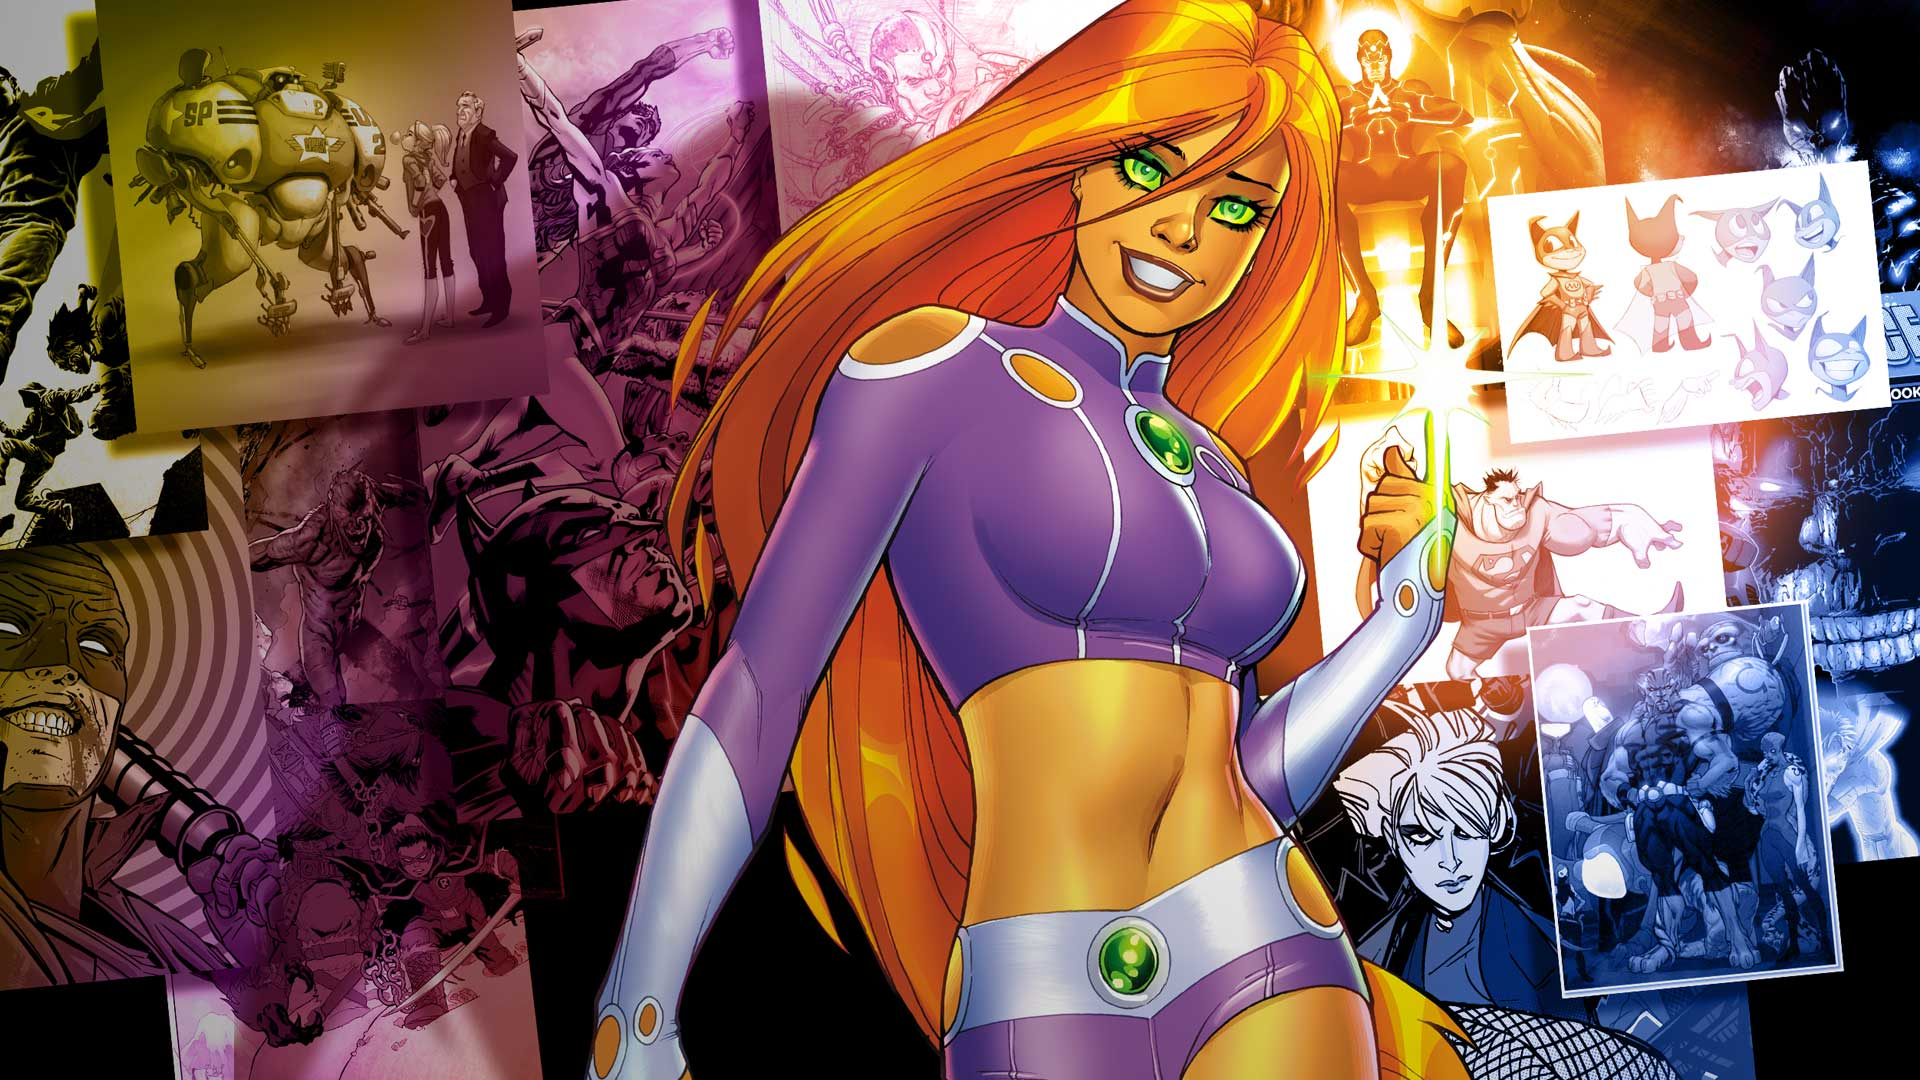 DC Sneak Peeks Starfire Section 8 Midnighter Prez And More